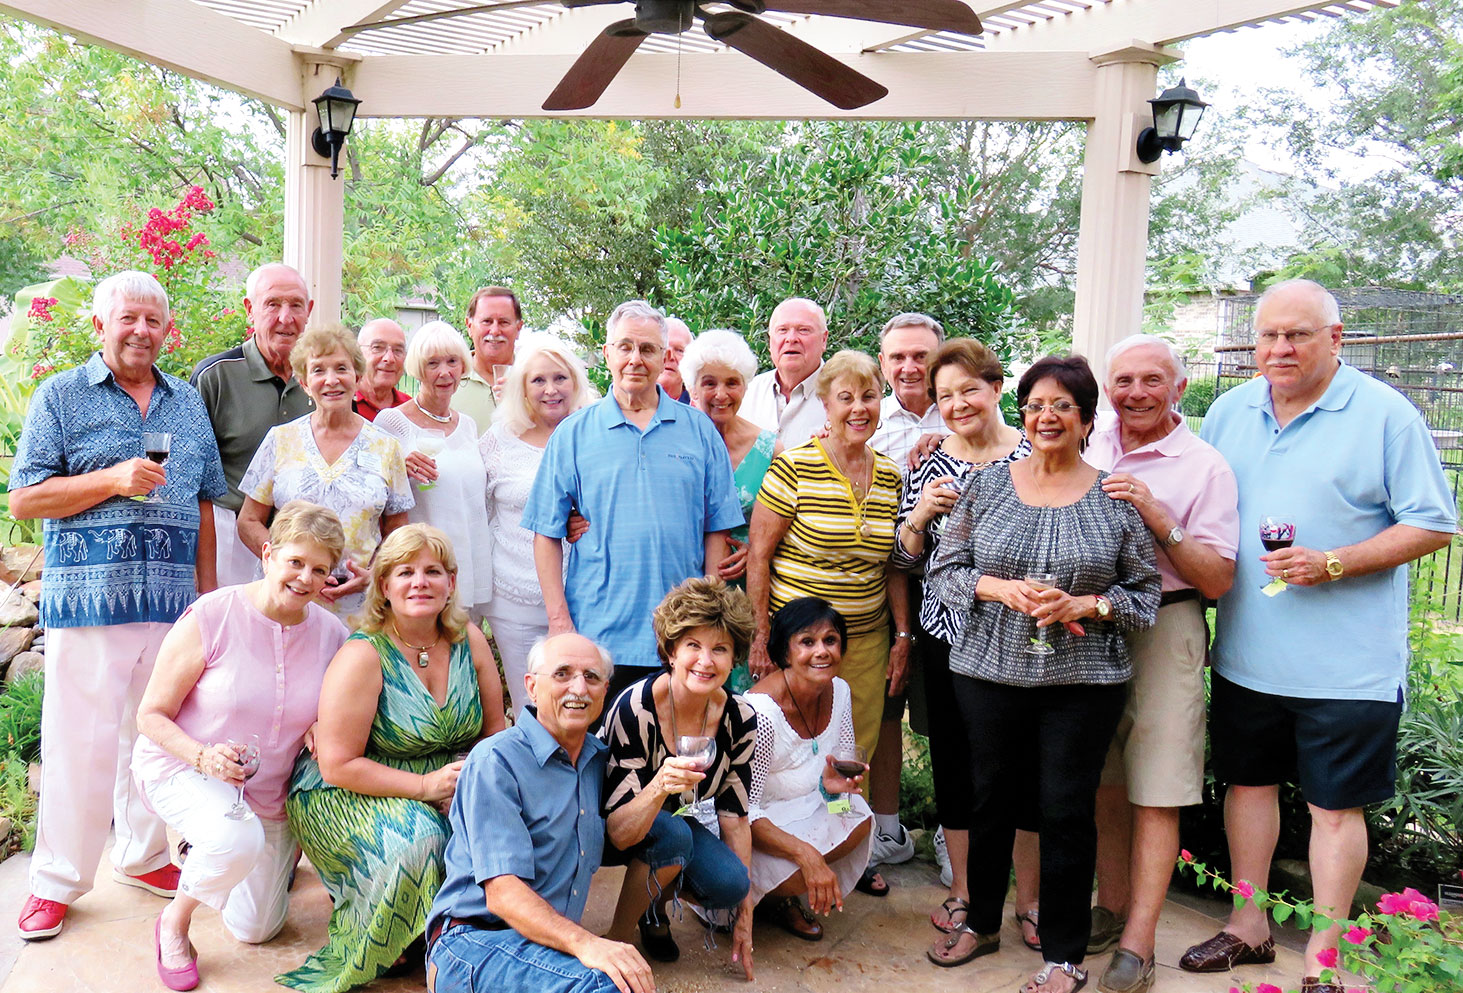 Left to right, front row: Brenda McKenzie, Susan Parker, Pete Toppan, Nancy Toppan and Vickie Bone; middle row: Eileen Whittaker, Beverlee Deardorff, Vivian Wright, Bill Fideli, Bernadette Fideli, Cherie Snowden, Millie Aramanda, Rupa Mathur, Jere Bone and CT Robertson; back row: Alfred Van Good, Jim Fox, Mike Aramanda, David Parker, Al Wright, Frank Deardorff and Charlie Snowden